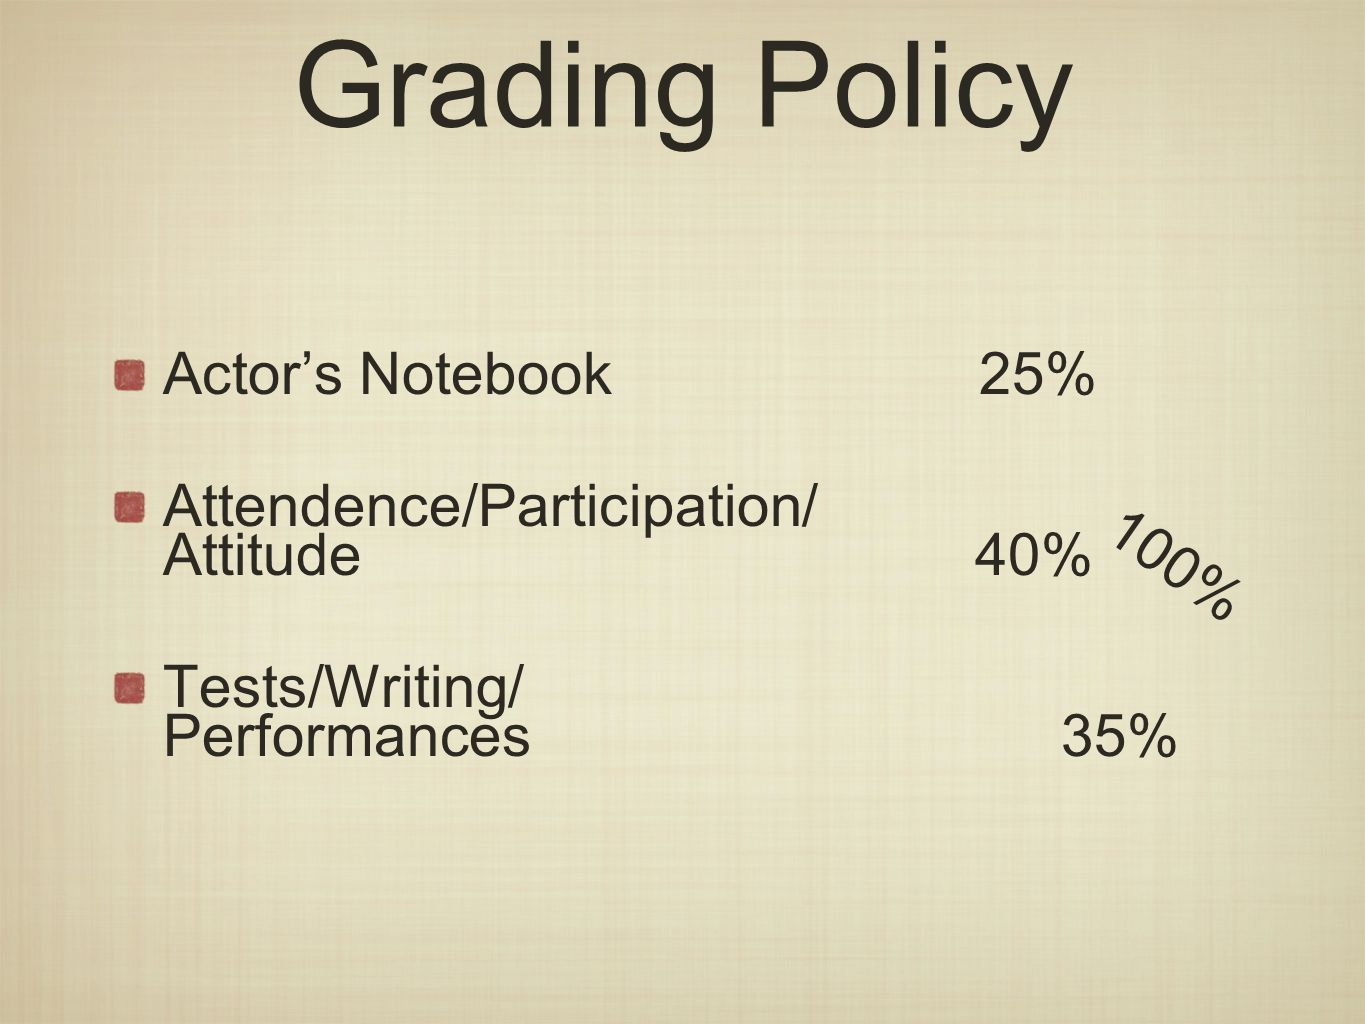 Actors Notebook 25% Attendence/Participation/ Attitude40% Tests/Writing/ Performances 35% Grading Policy 100%